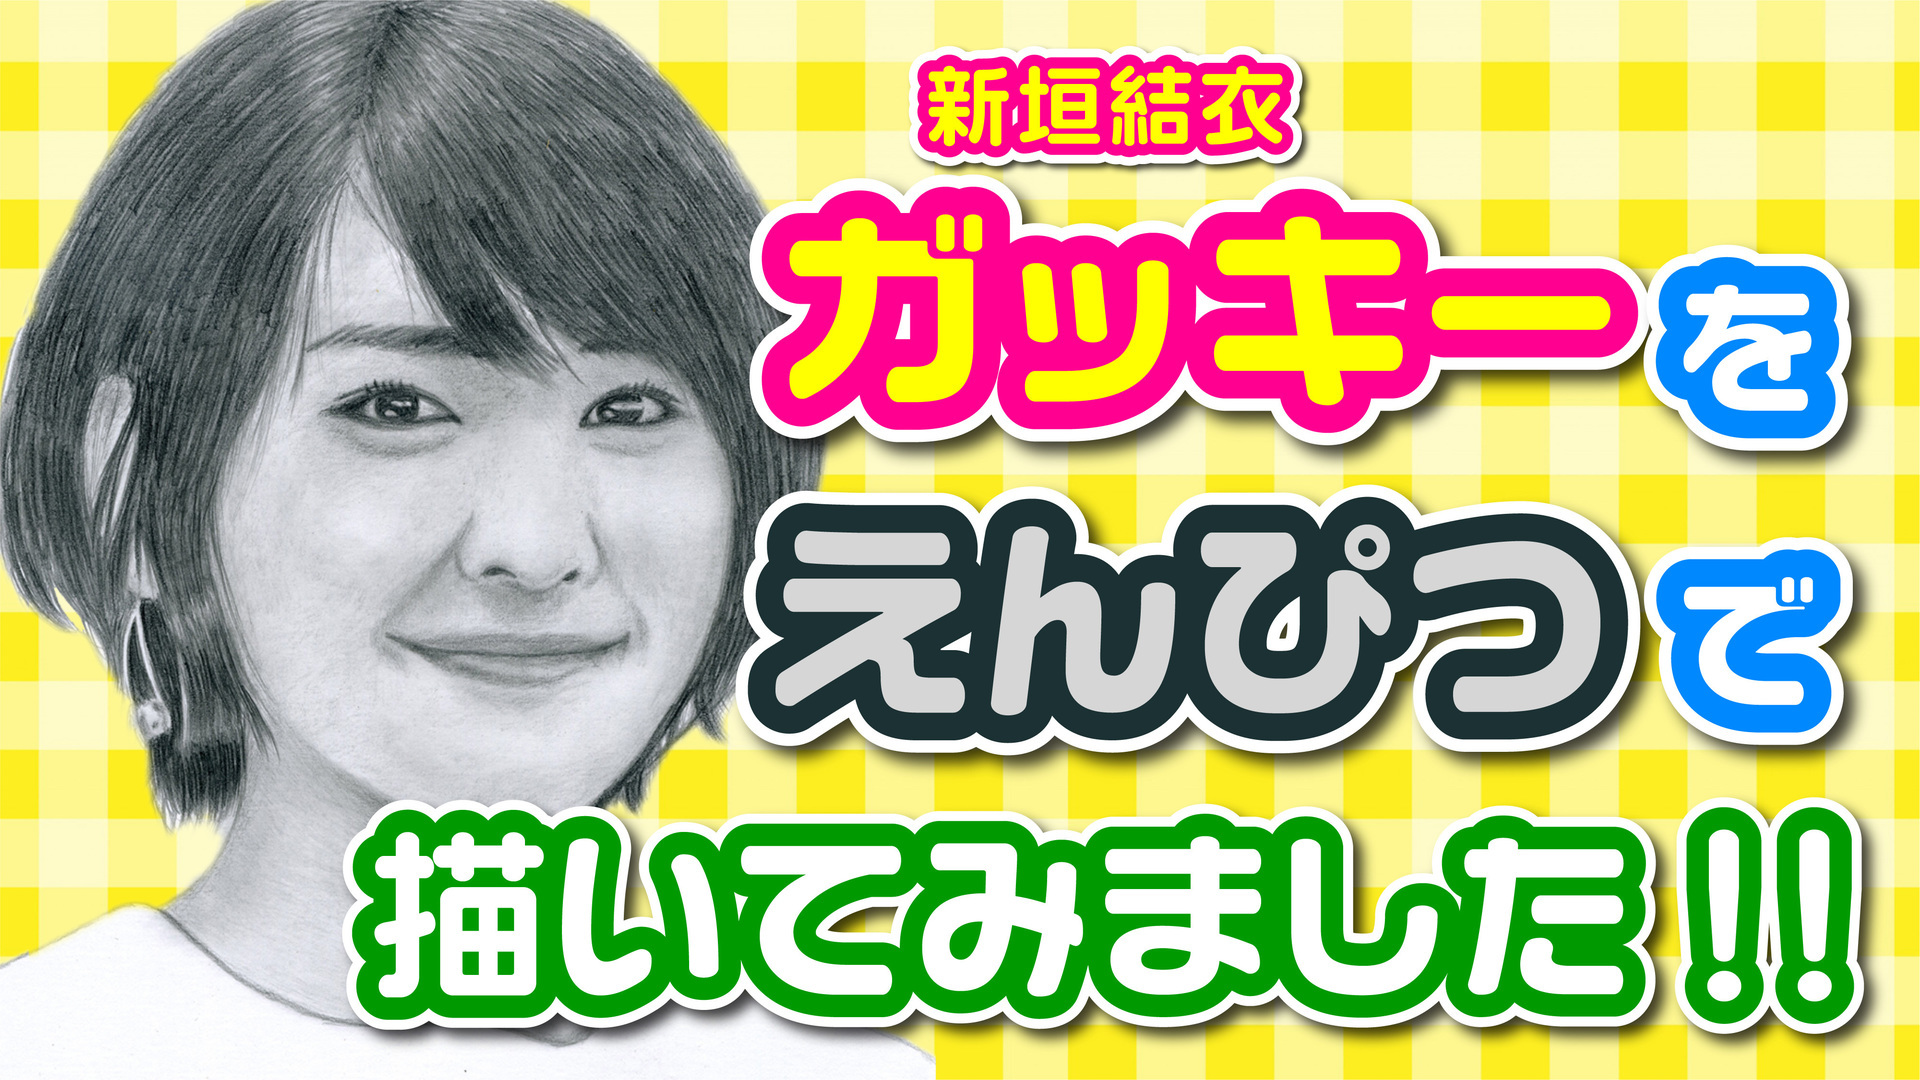 Youtubeサムネイル 新垣結衣鉛筆画.jpg